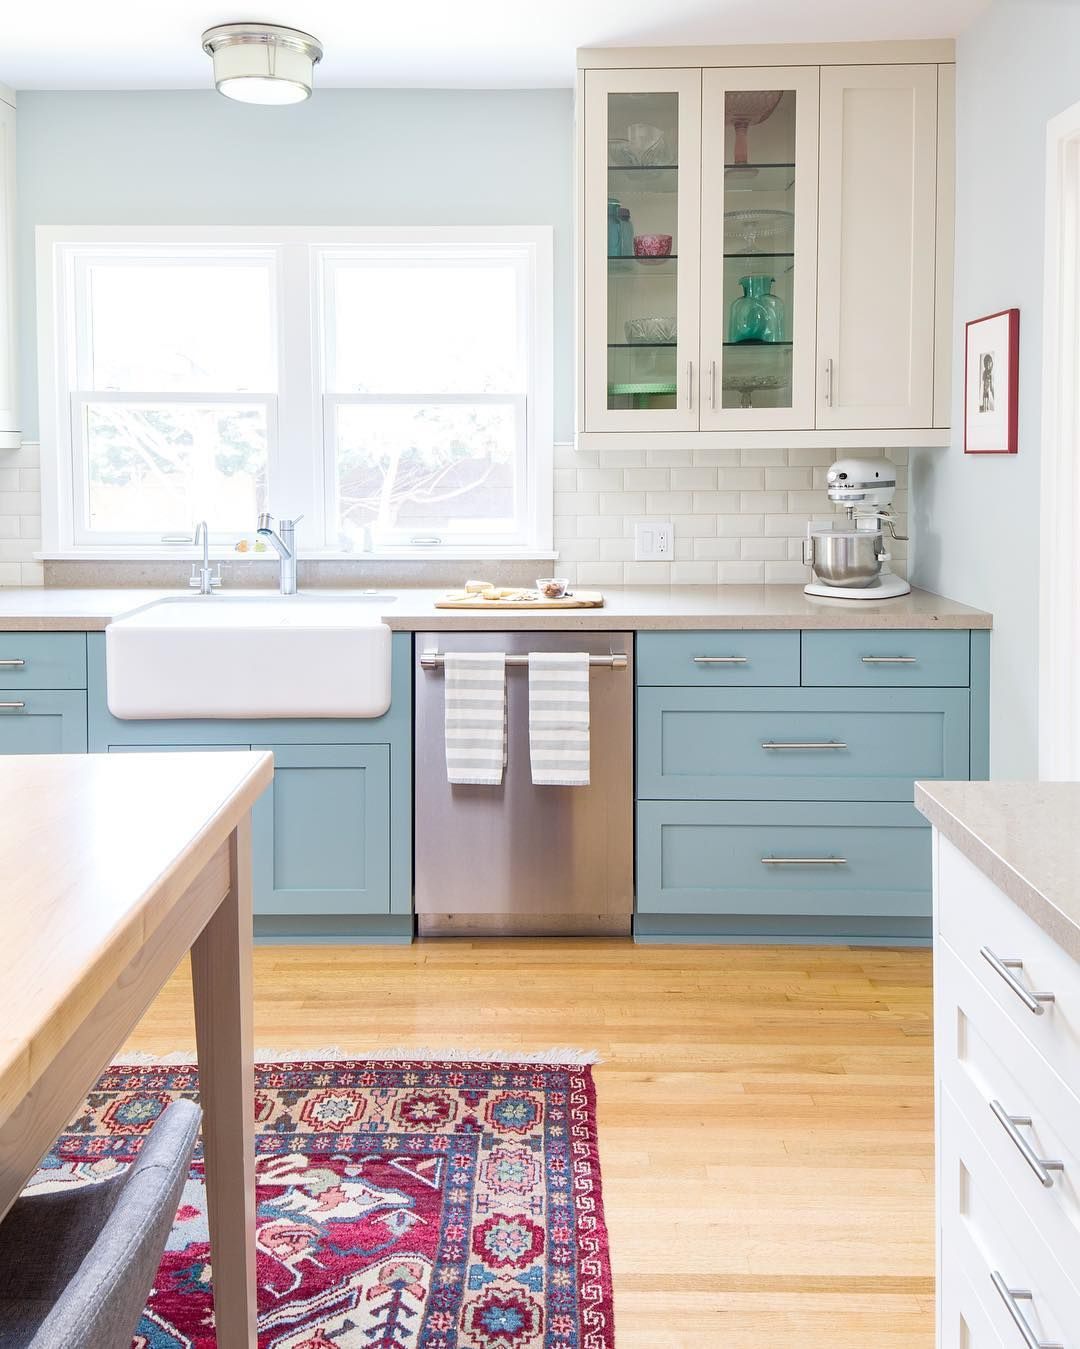 Blue And White Kitchen Decor Robin S Egg Blue Lower Cabinets Cream Uppers And Boho Colorful Rug In Cont Small Kitchen Plans Kitchen Remodel All White Kitchen